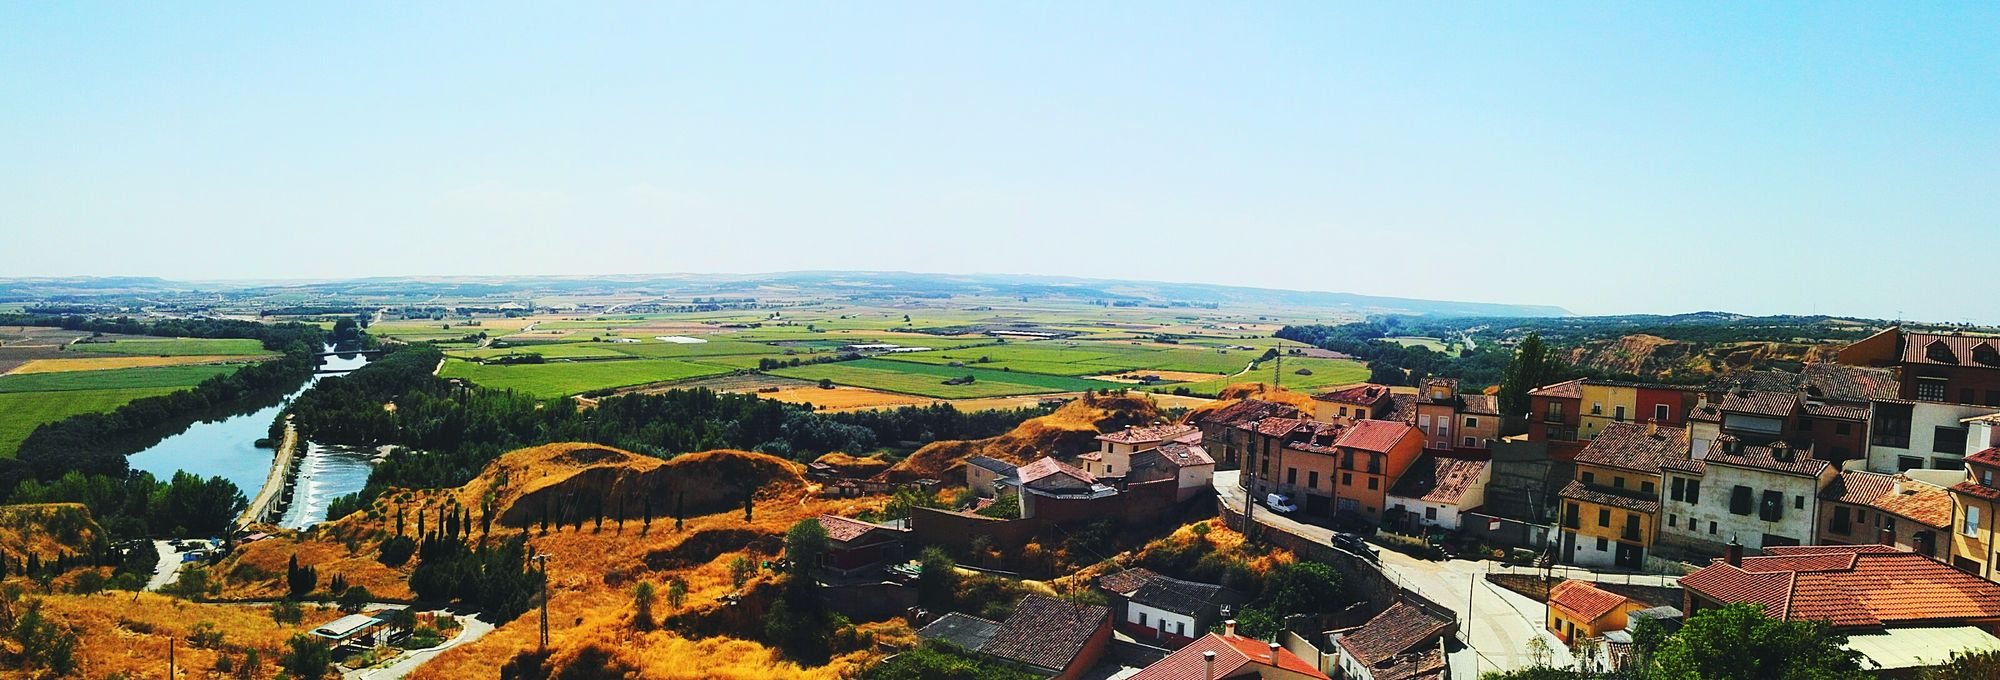 Huaweiphotography Panorama SPAIN Spanish Architecture Autumn Fall Colors Village Outdoors From Above  Small Houses Nature Tree